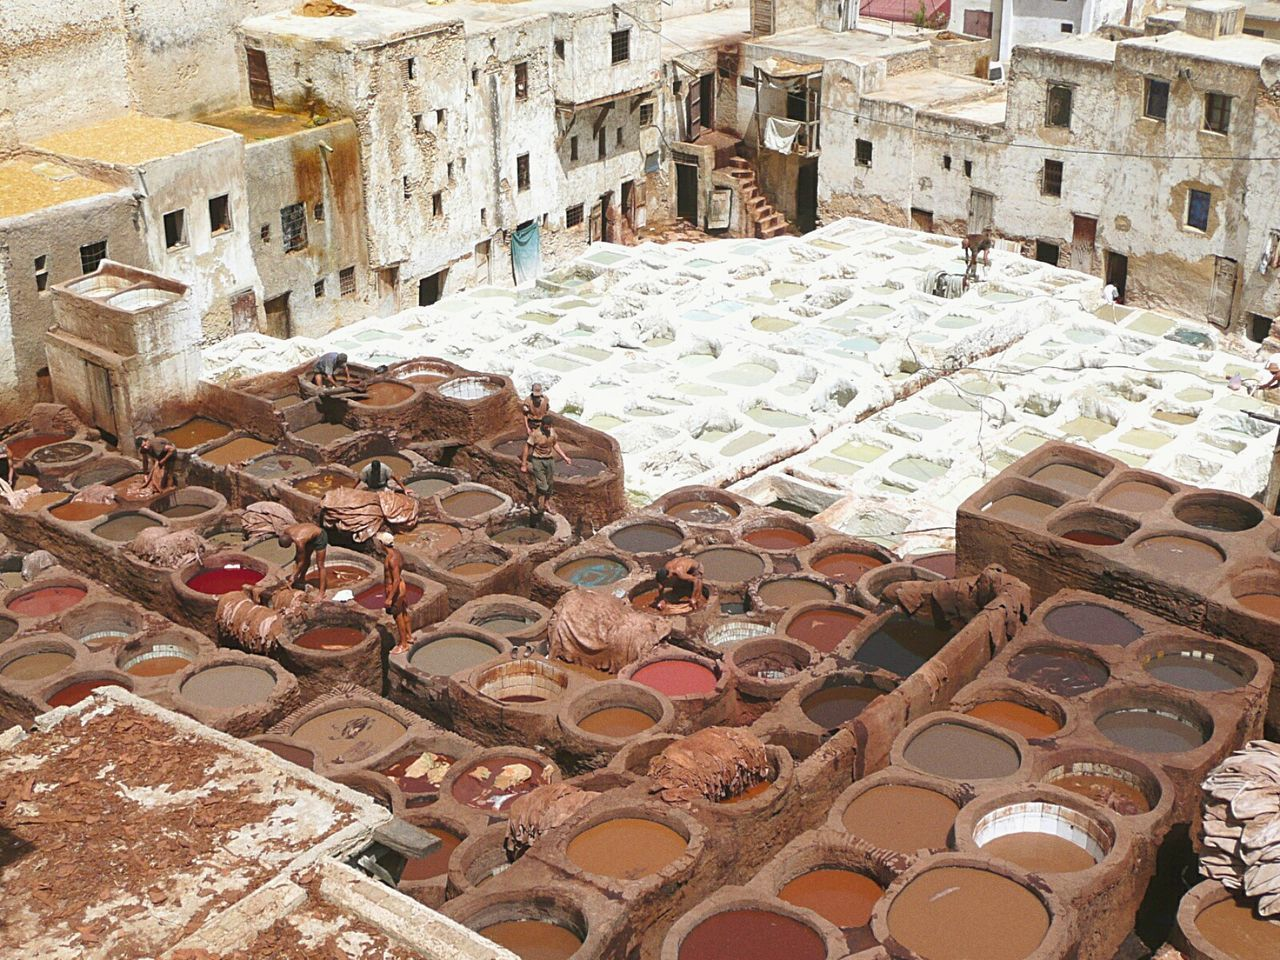 Morocco Fez Tradition Historic City Expertise Craftsmanship  Leather Tannery Dyeing Pits Tanning Pits Leather Preparation Tanners